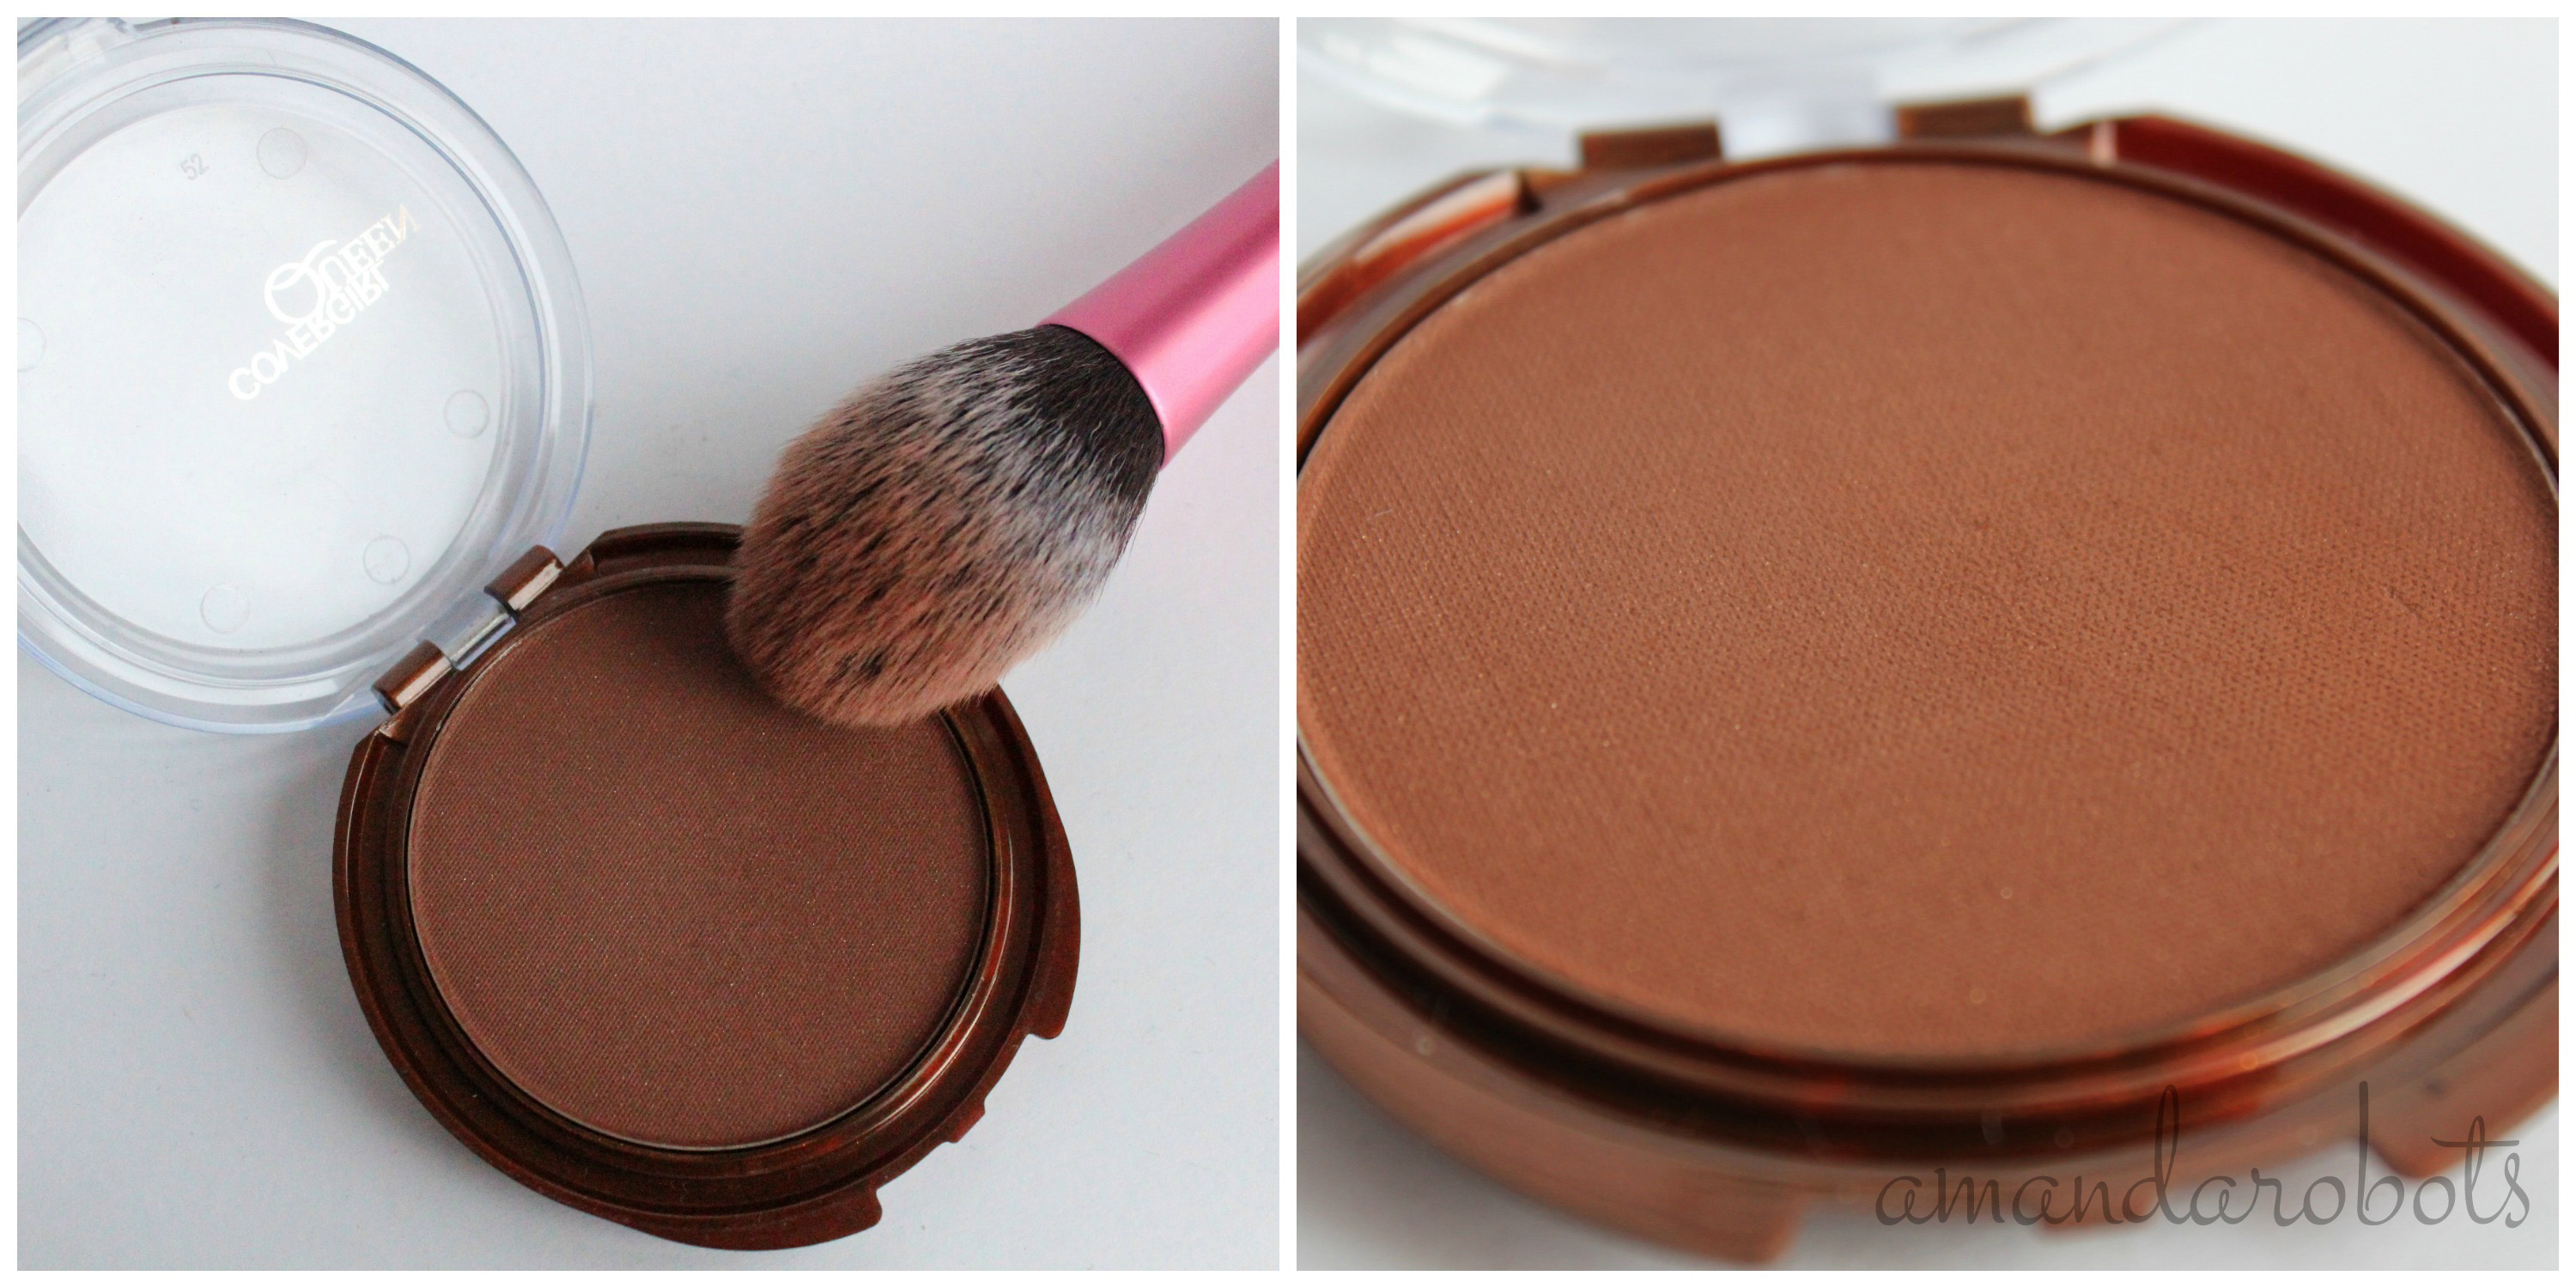 Queen collection ebony bronzer